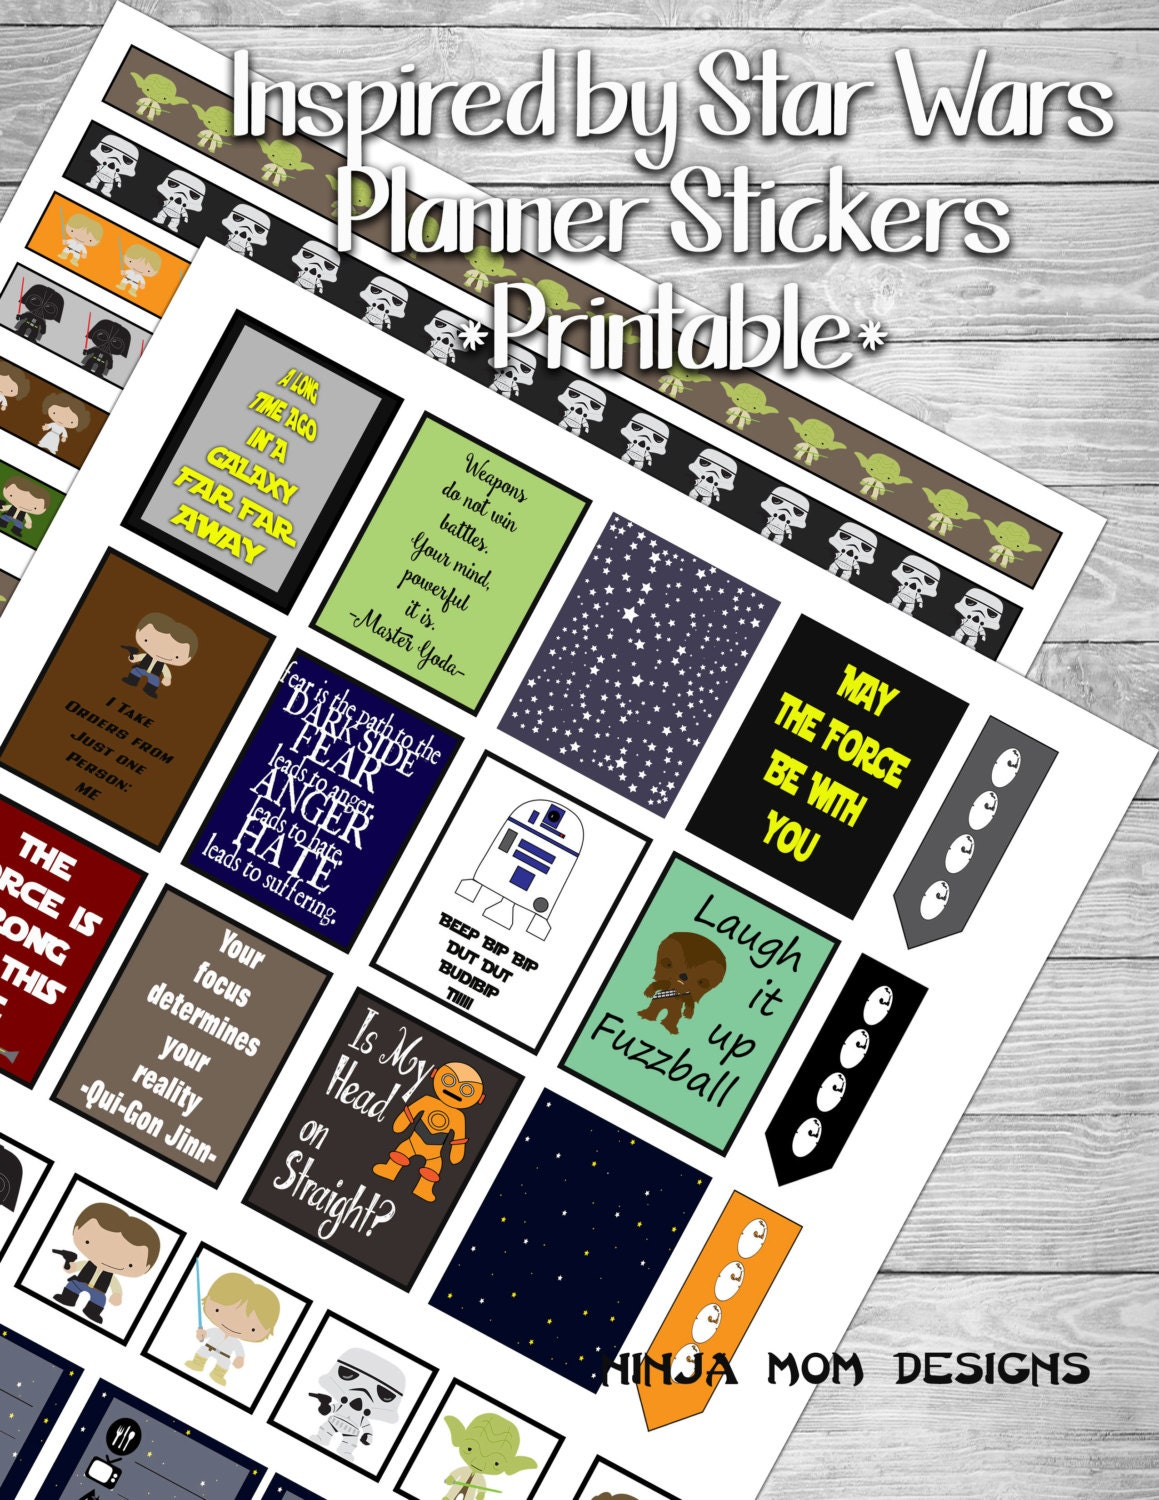 inspired by star wars sticker printable 2 pages digital file